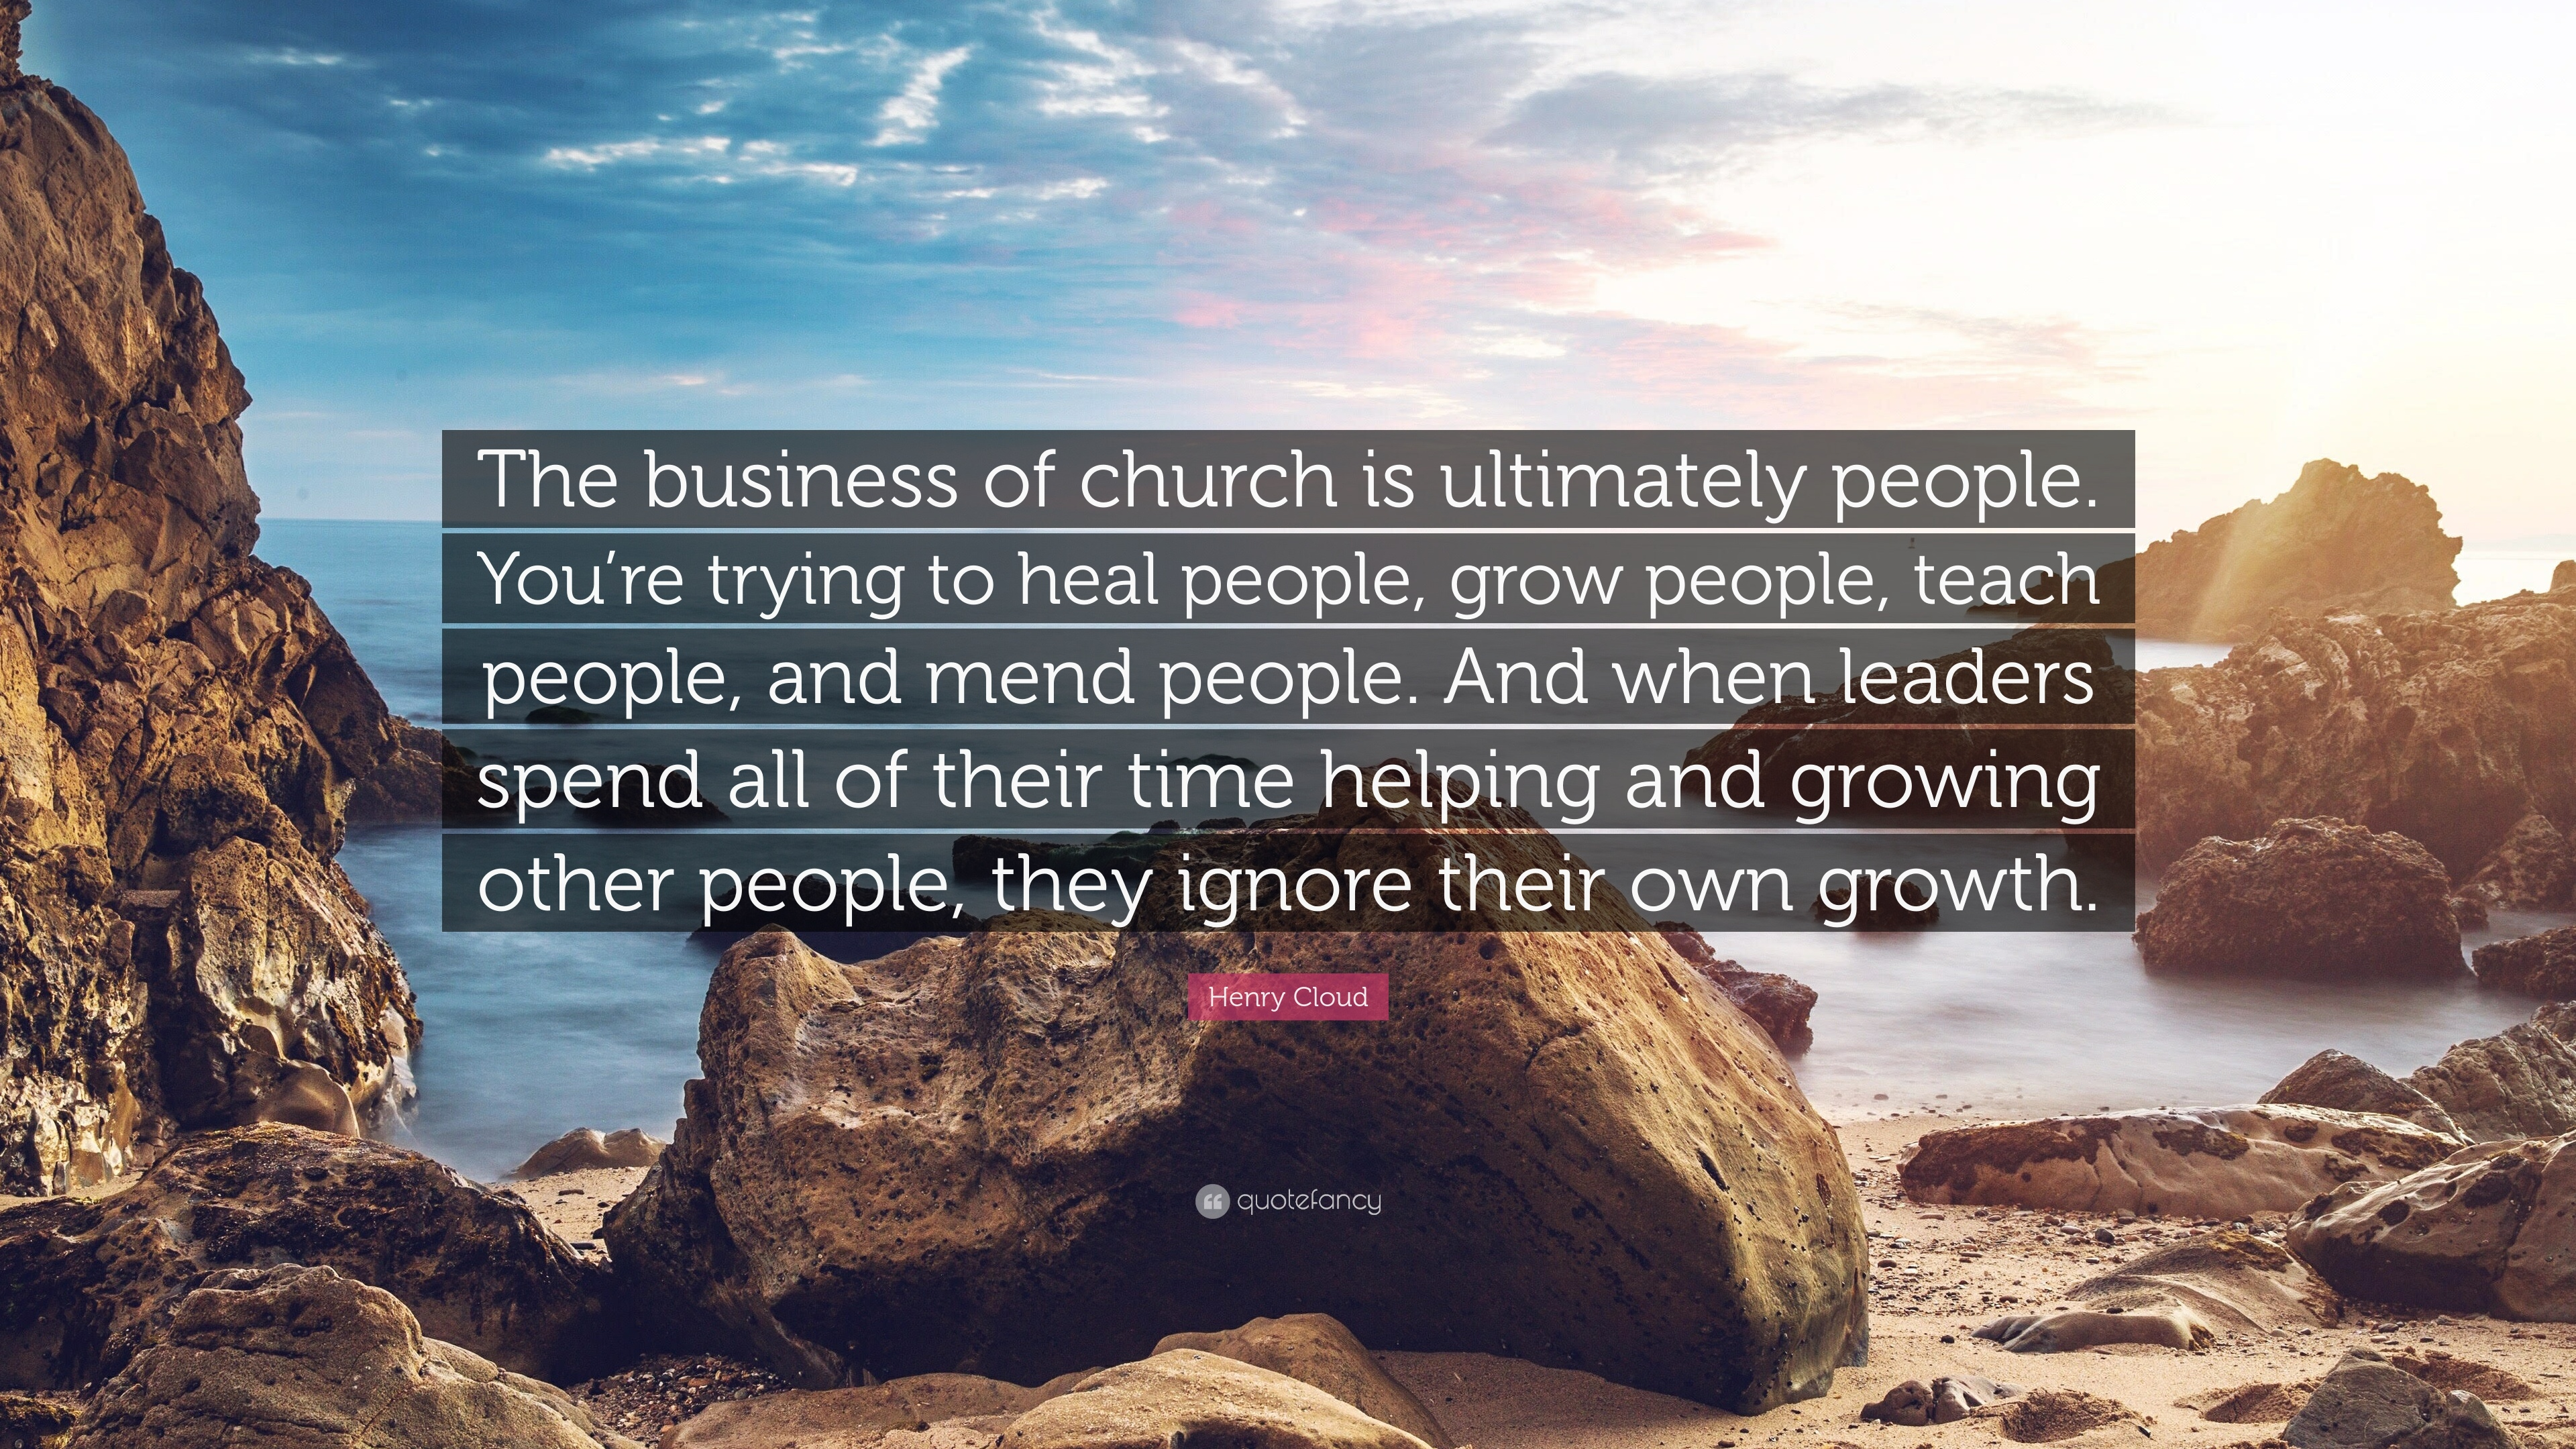 henry cloud quote the business of church is ultimately people henry cloud quote the business of church is ultimately people you re